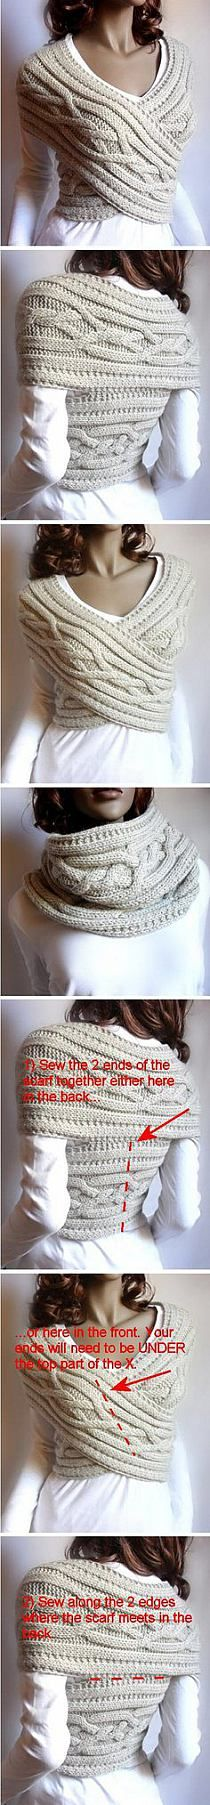 Very interesting way to convert a scarf to a garment...lots of possibilities and potential